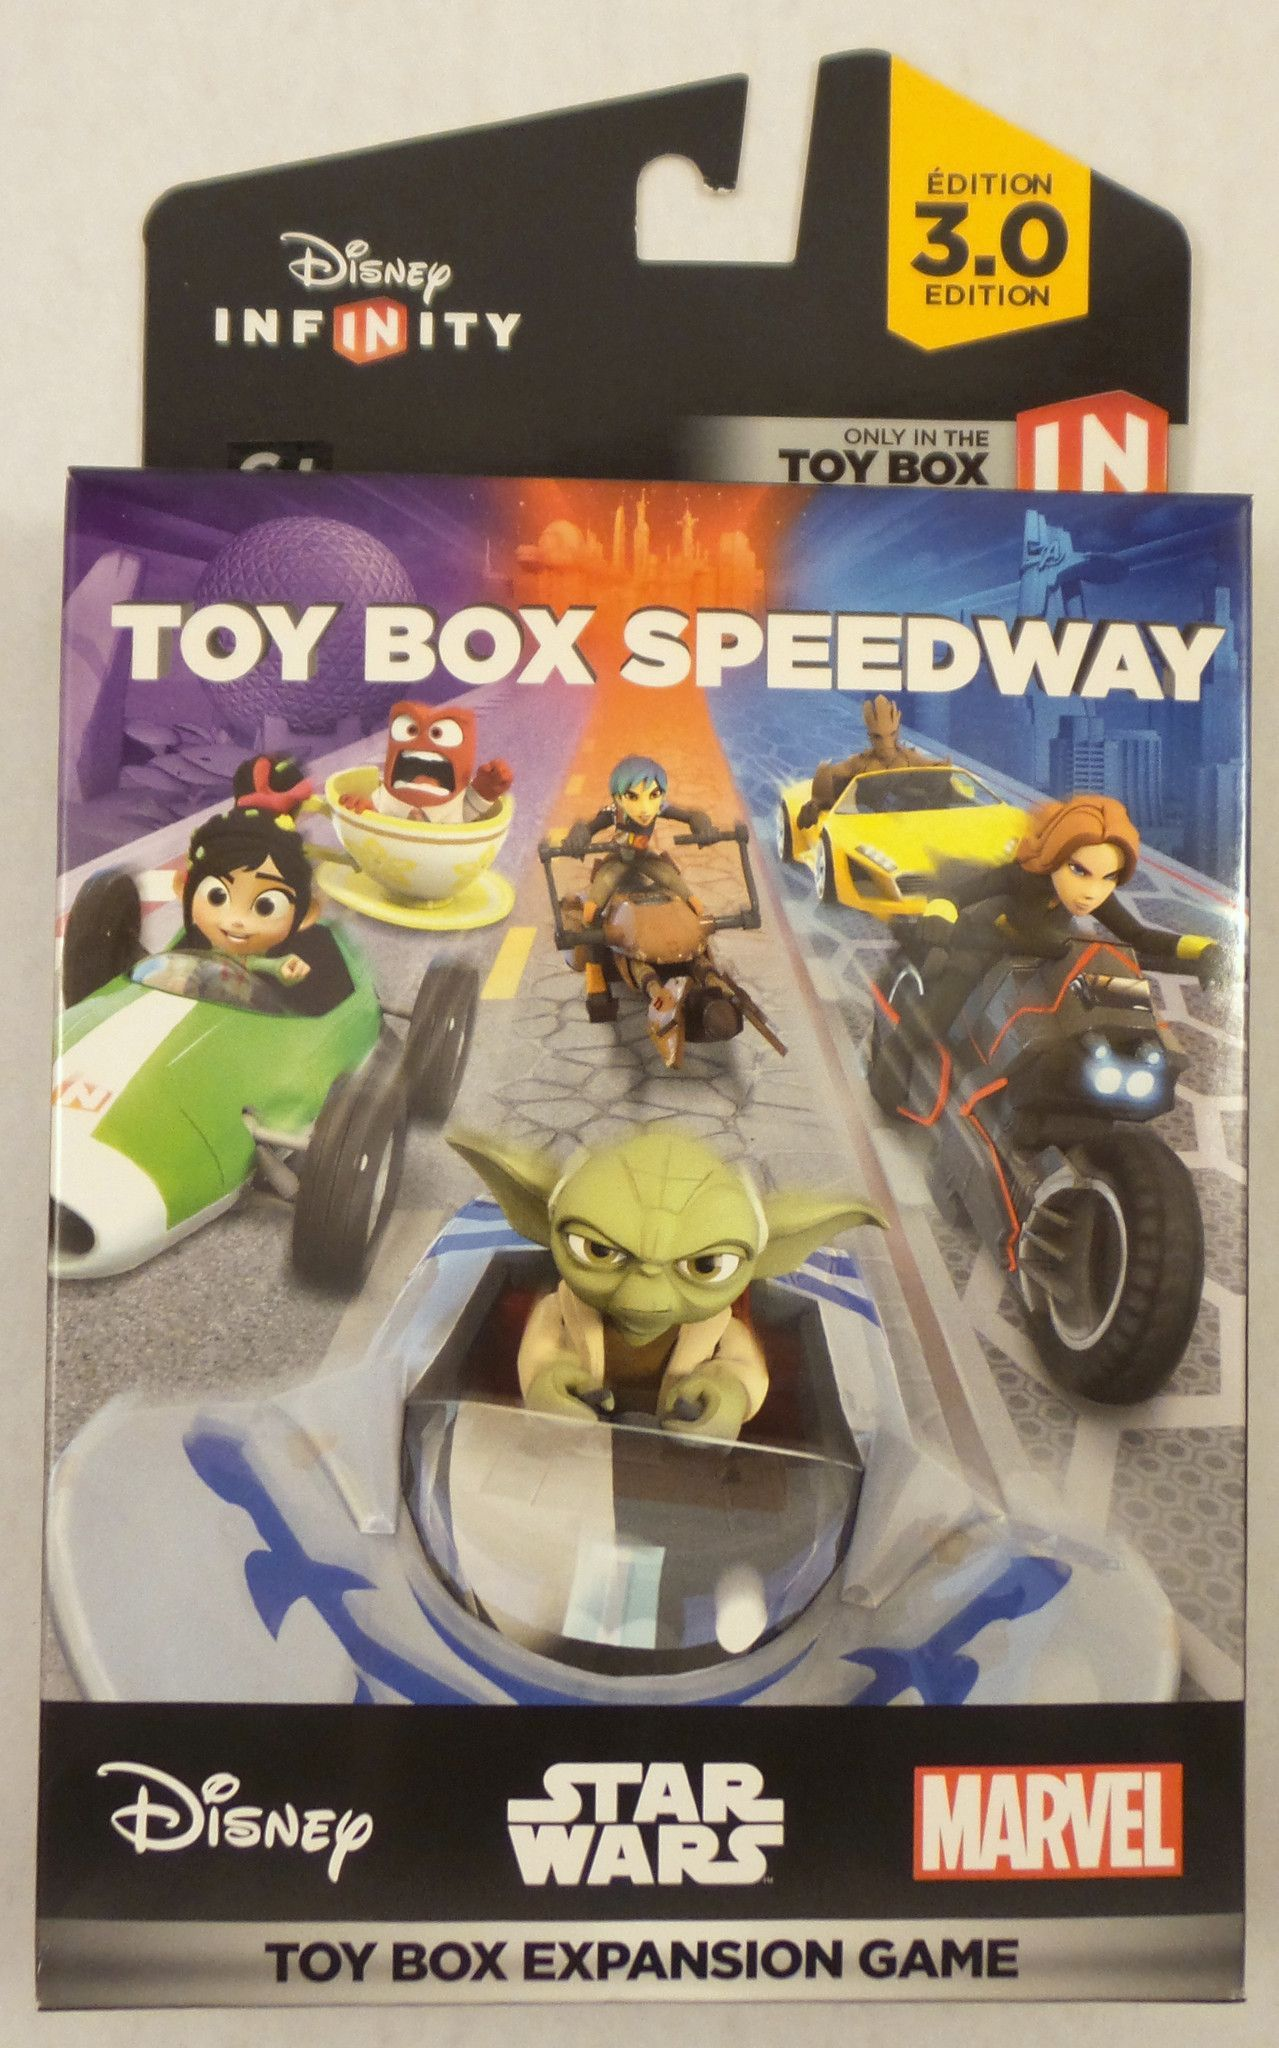 Disney Infinity 3.0 Edition Toy Box Speedway Expansion